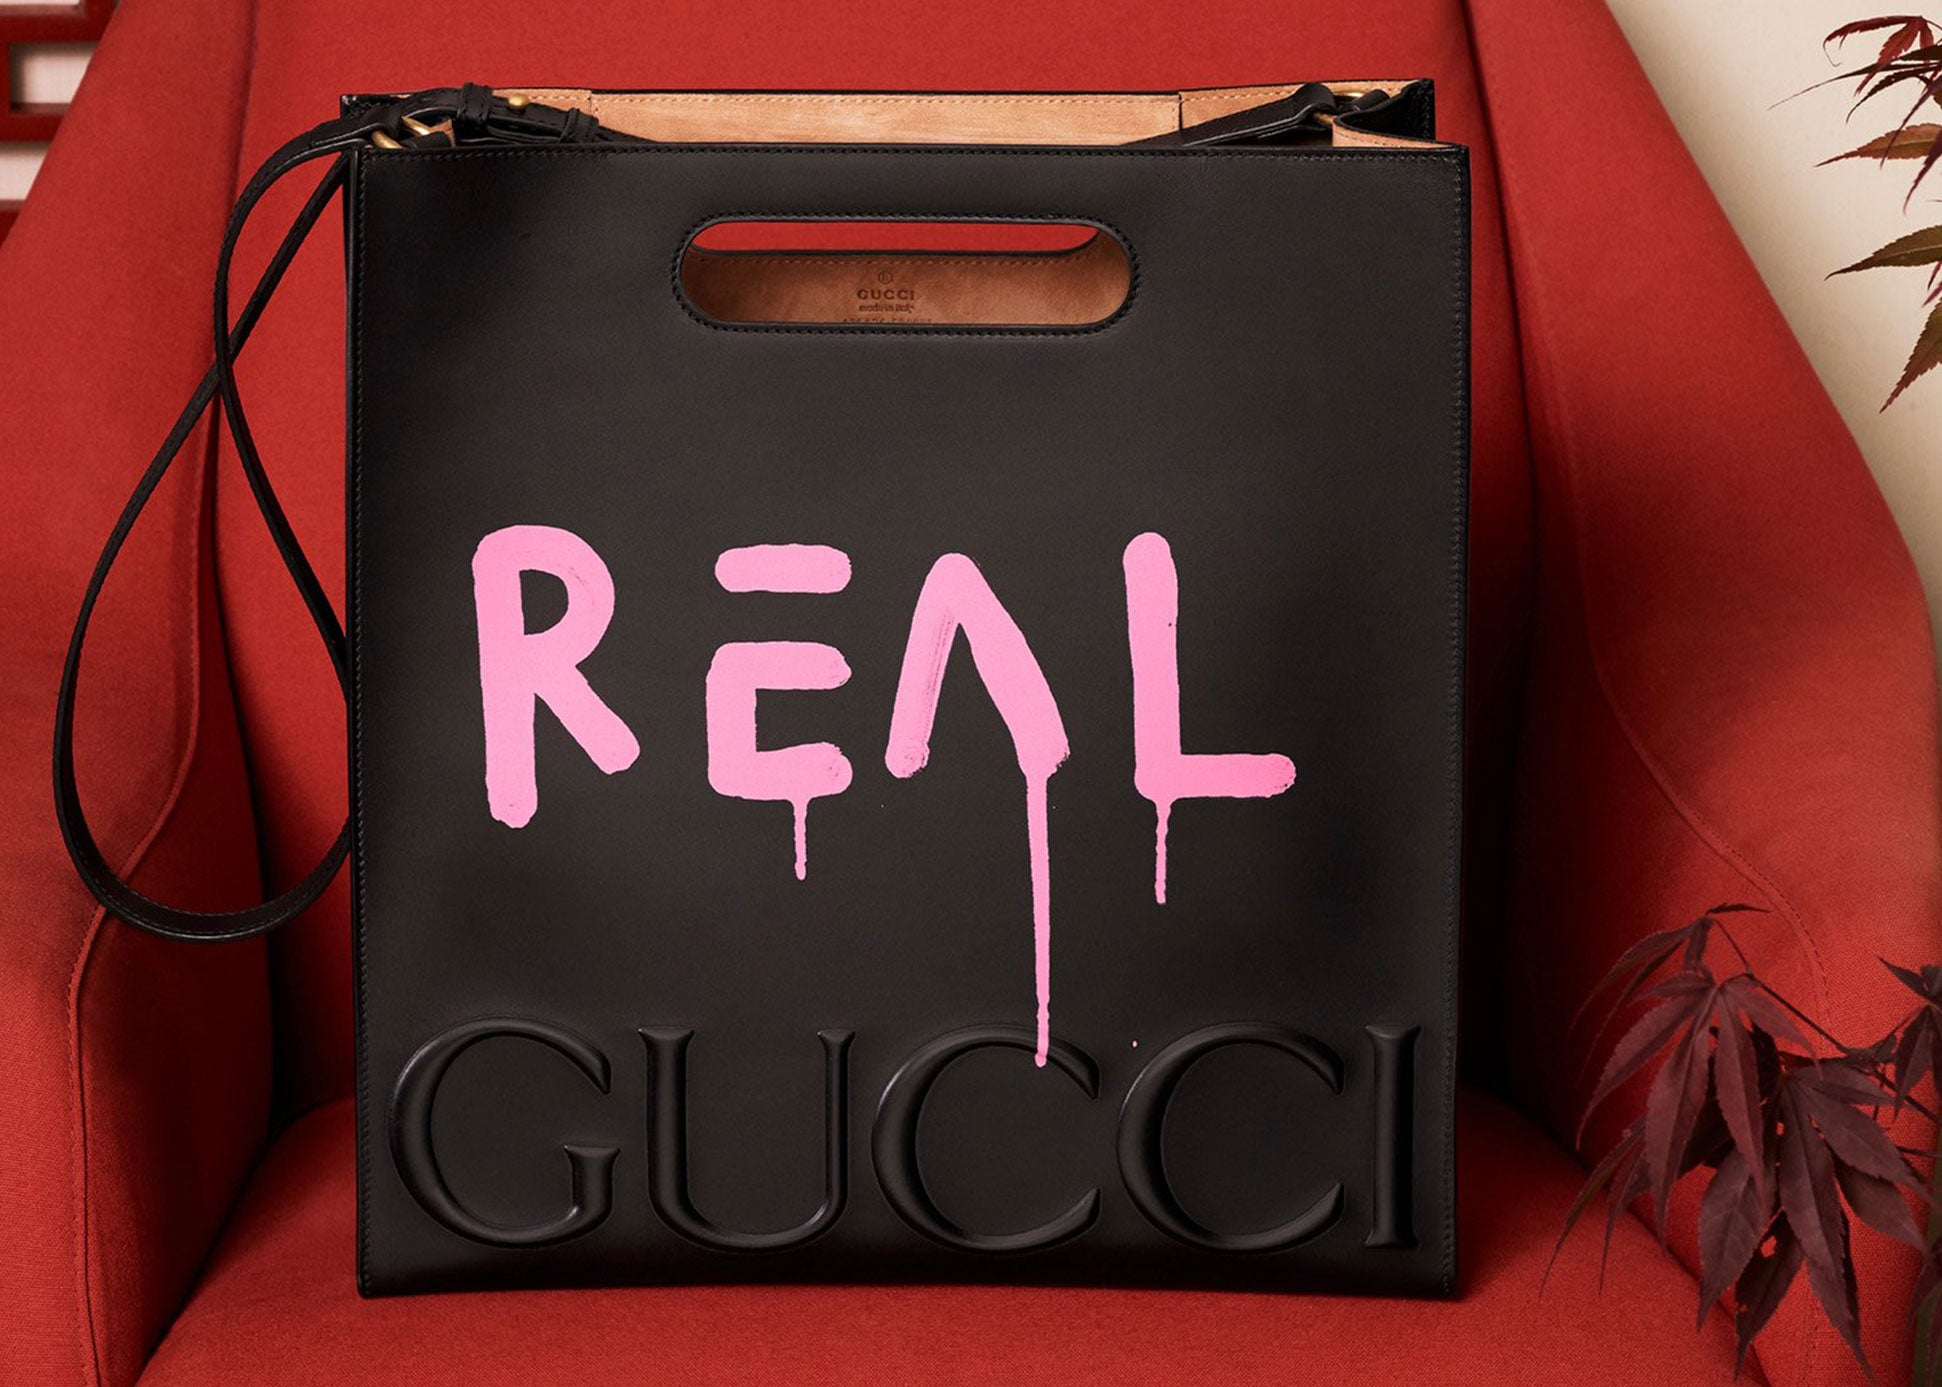 guccighost2